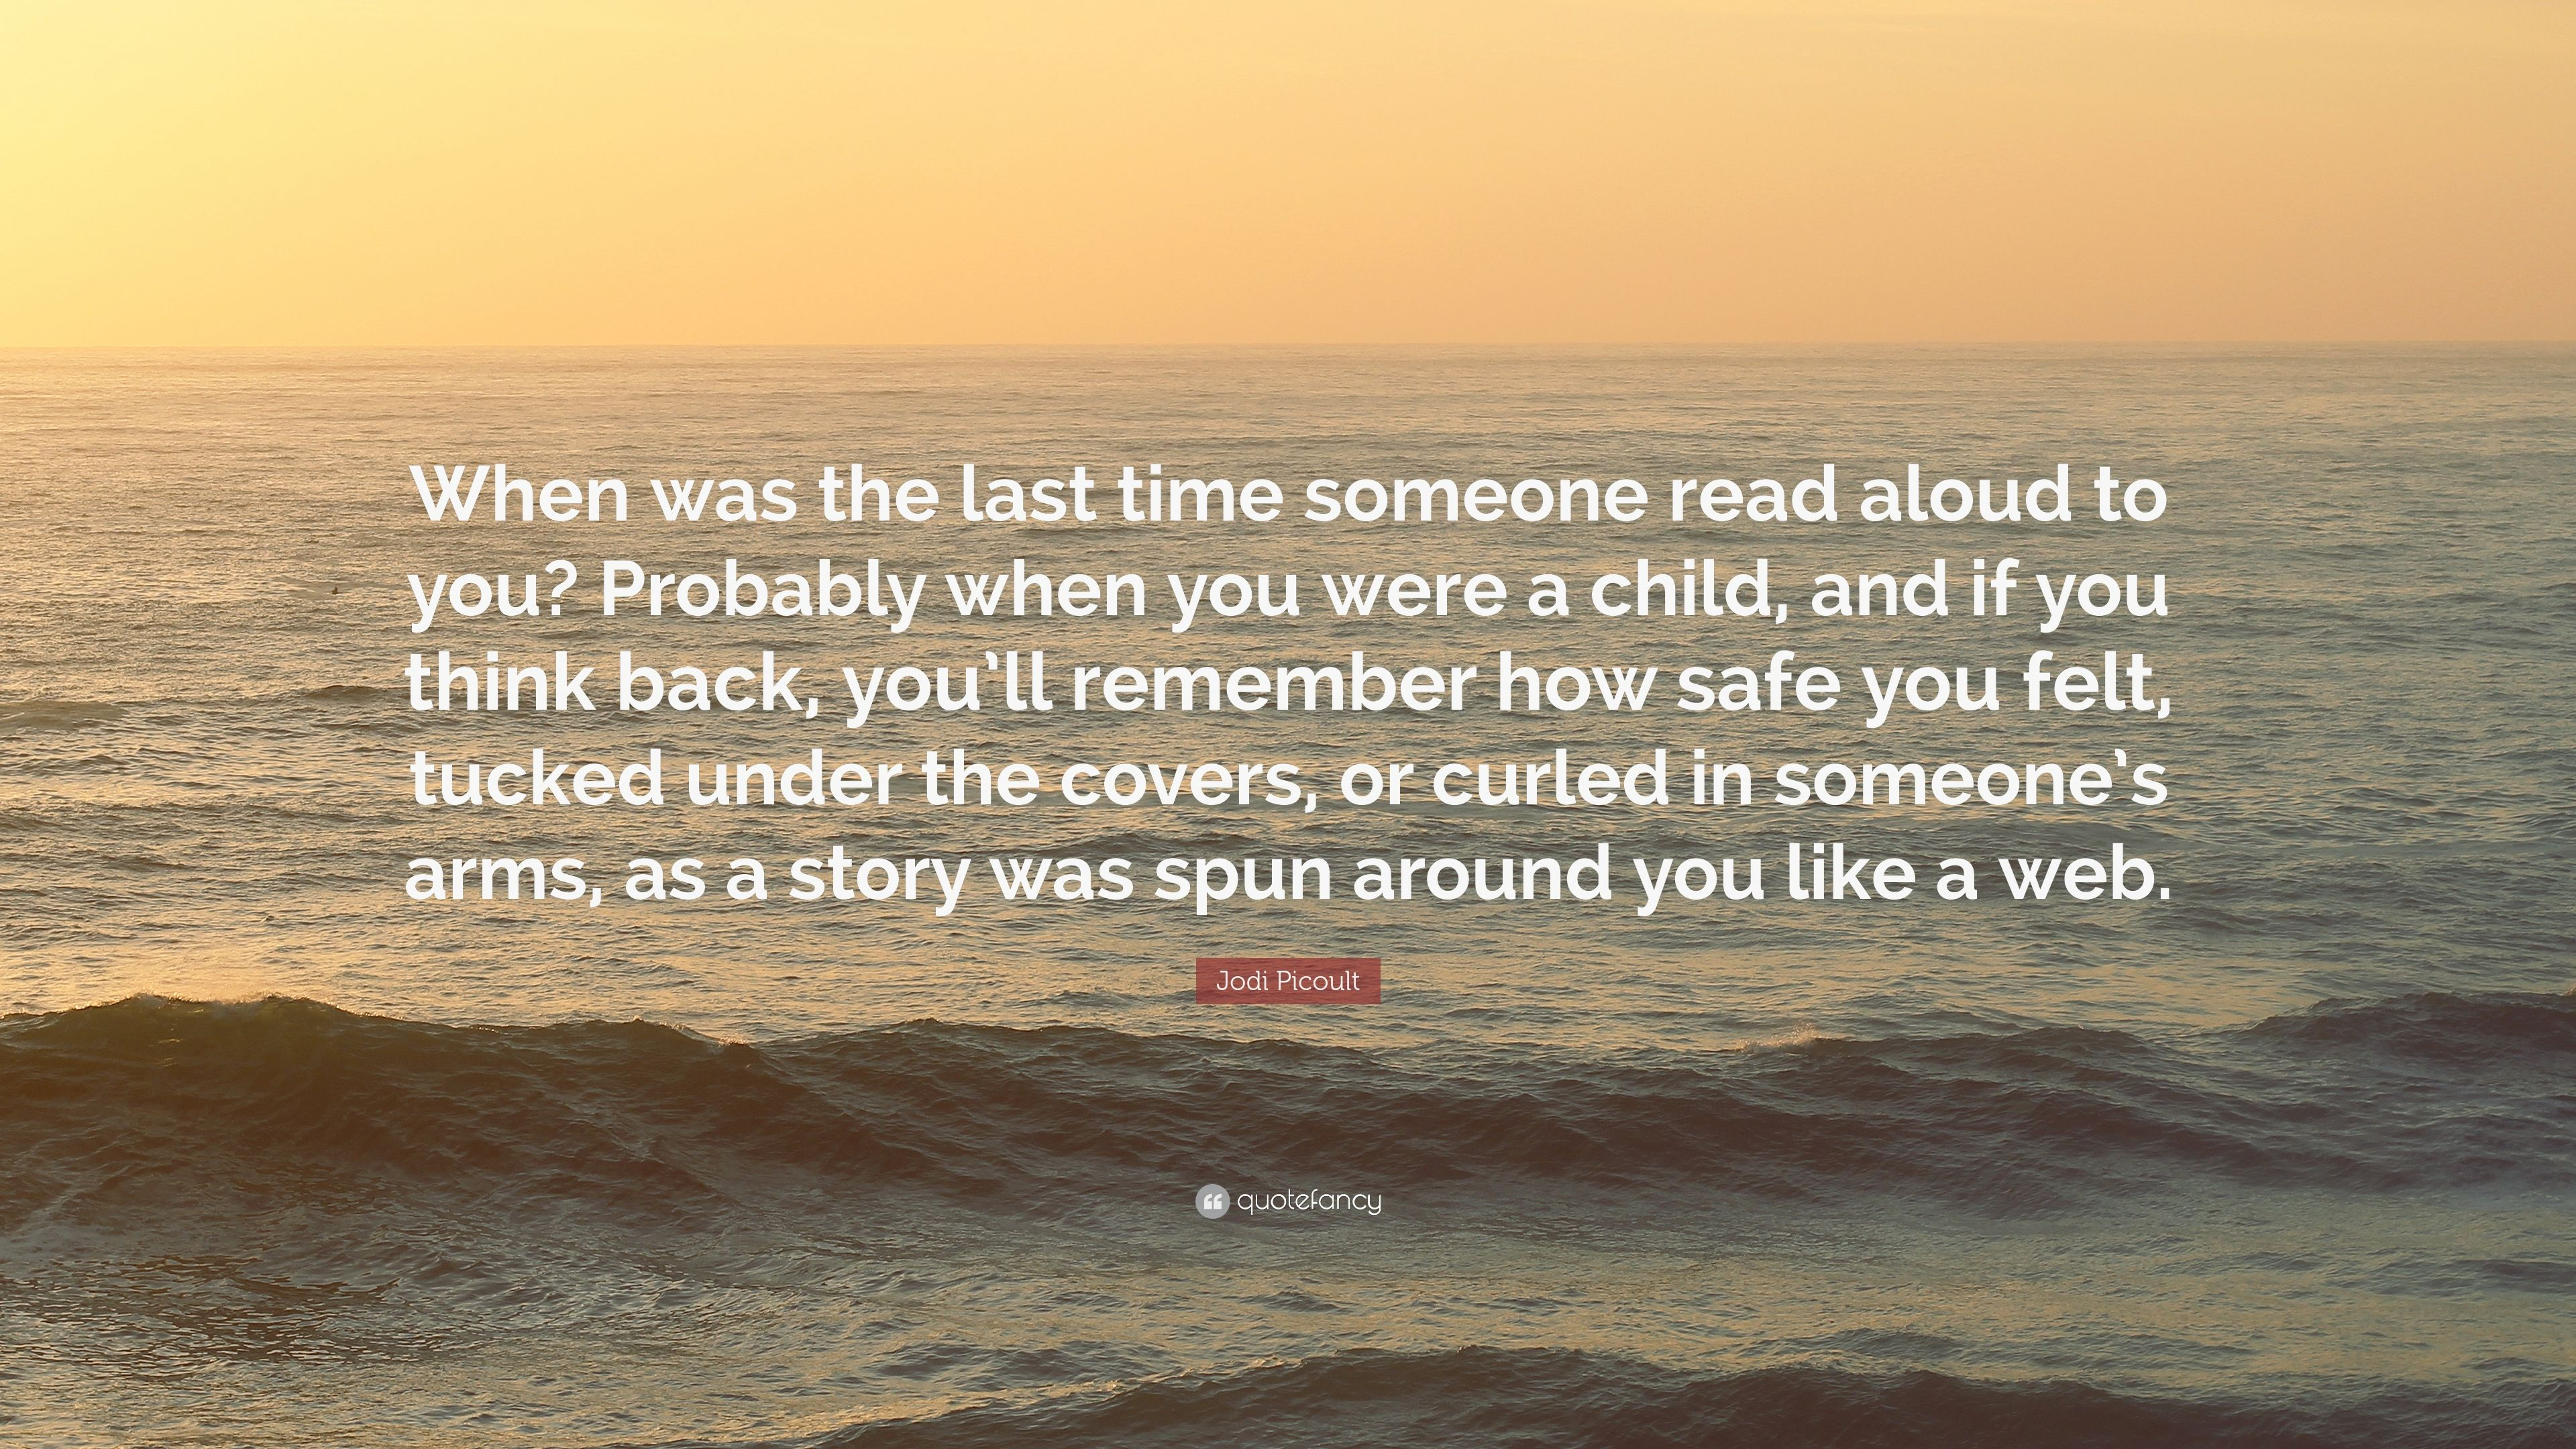 Jodi Picoult Quote When Was The Last Time Someone Read Aloud To You Probably When You Were A Child And If You Think Back You Ll Remember 7 Wallpapers Quotefancy